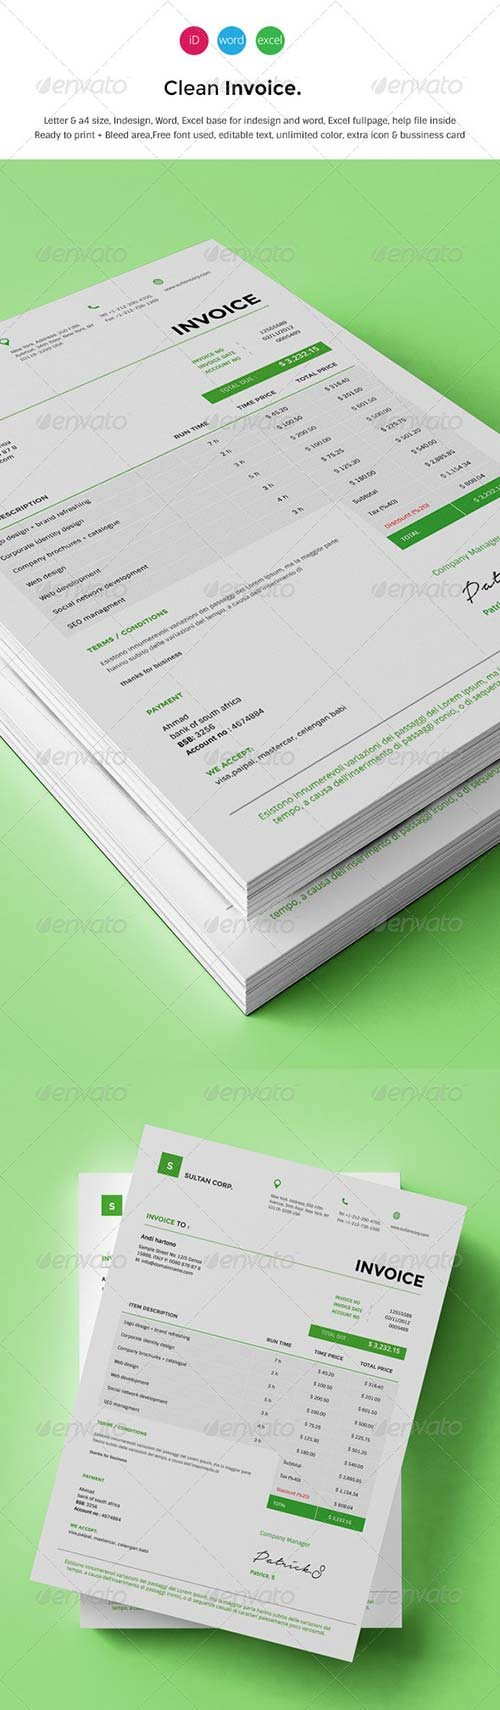 GraphicRiver Clean Invoice